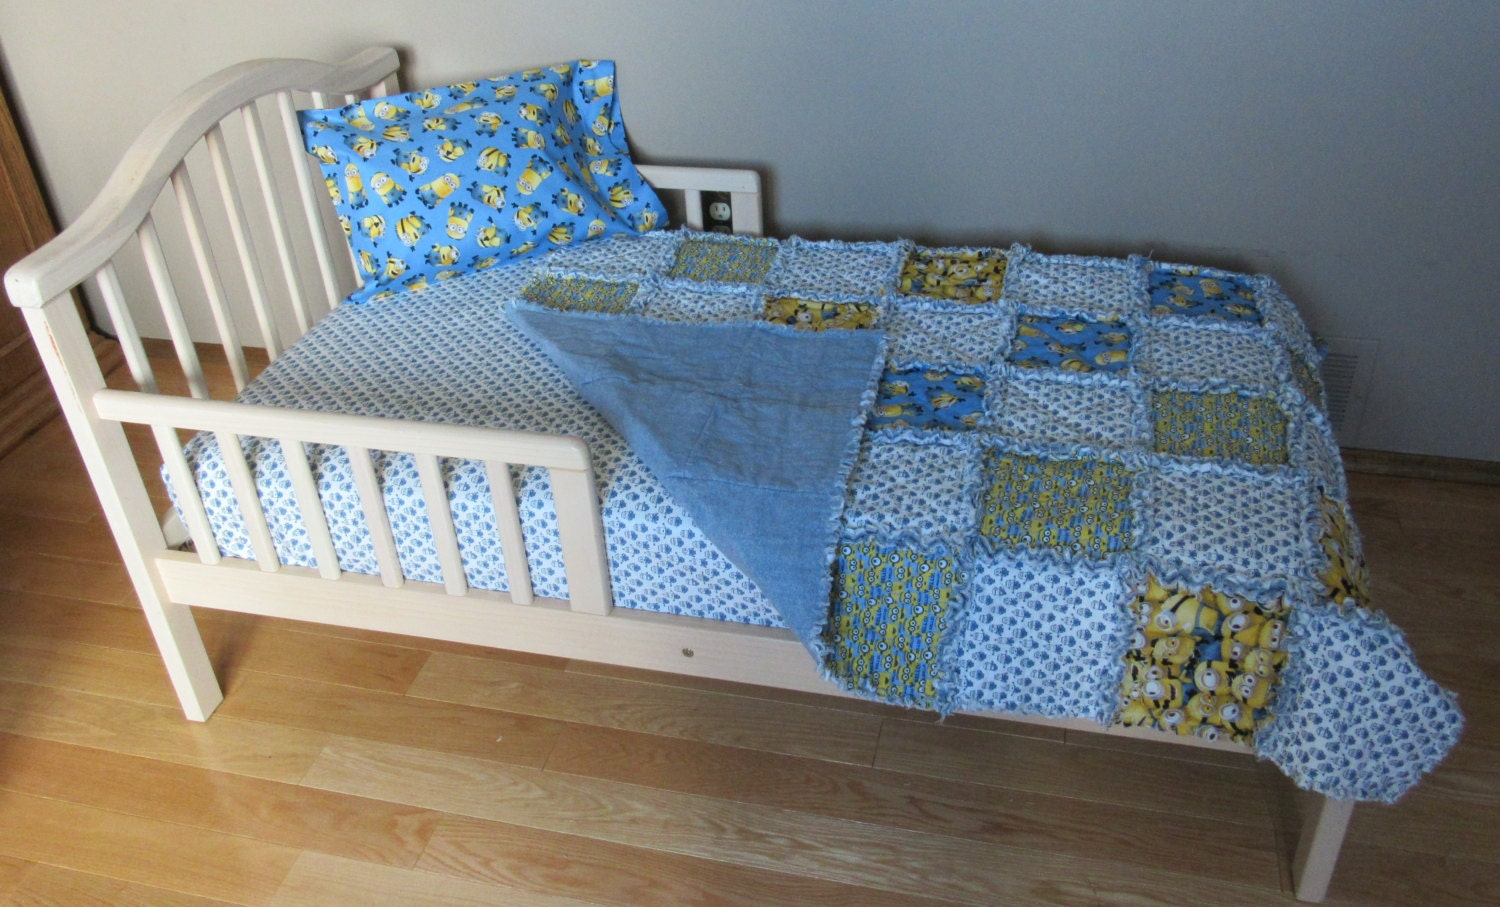 Toddler Bed MINIONS Despicable Me Fabric Crib Set By 1723diane